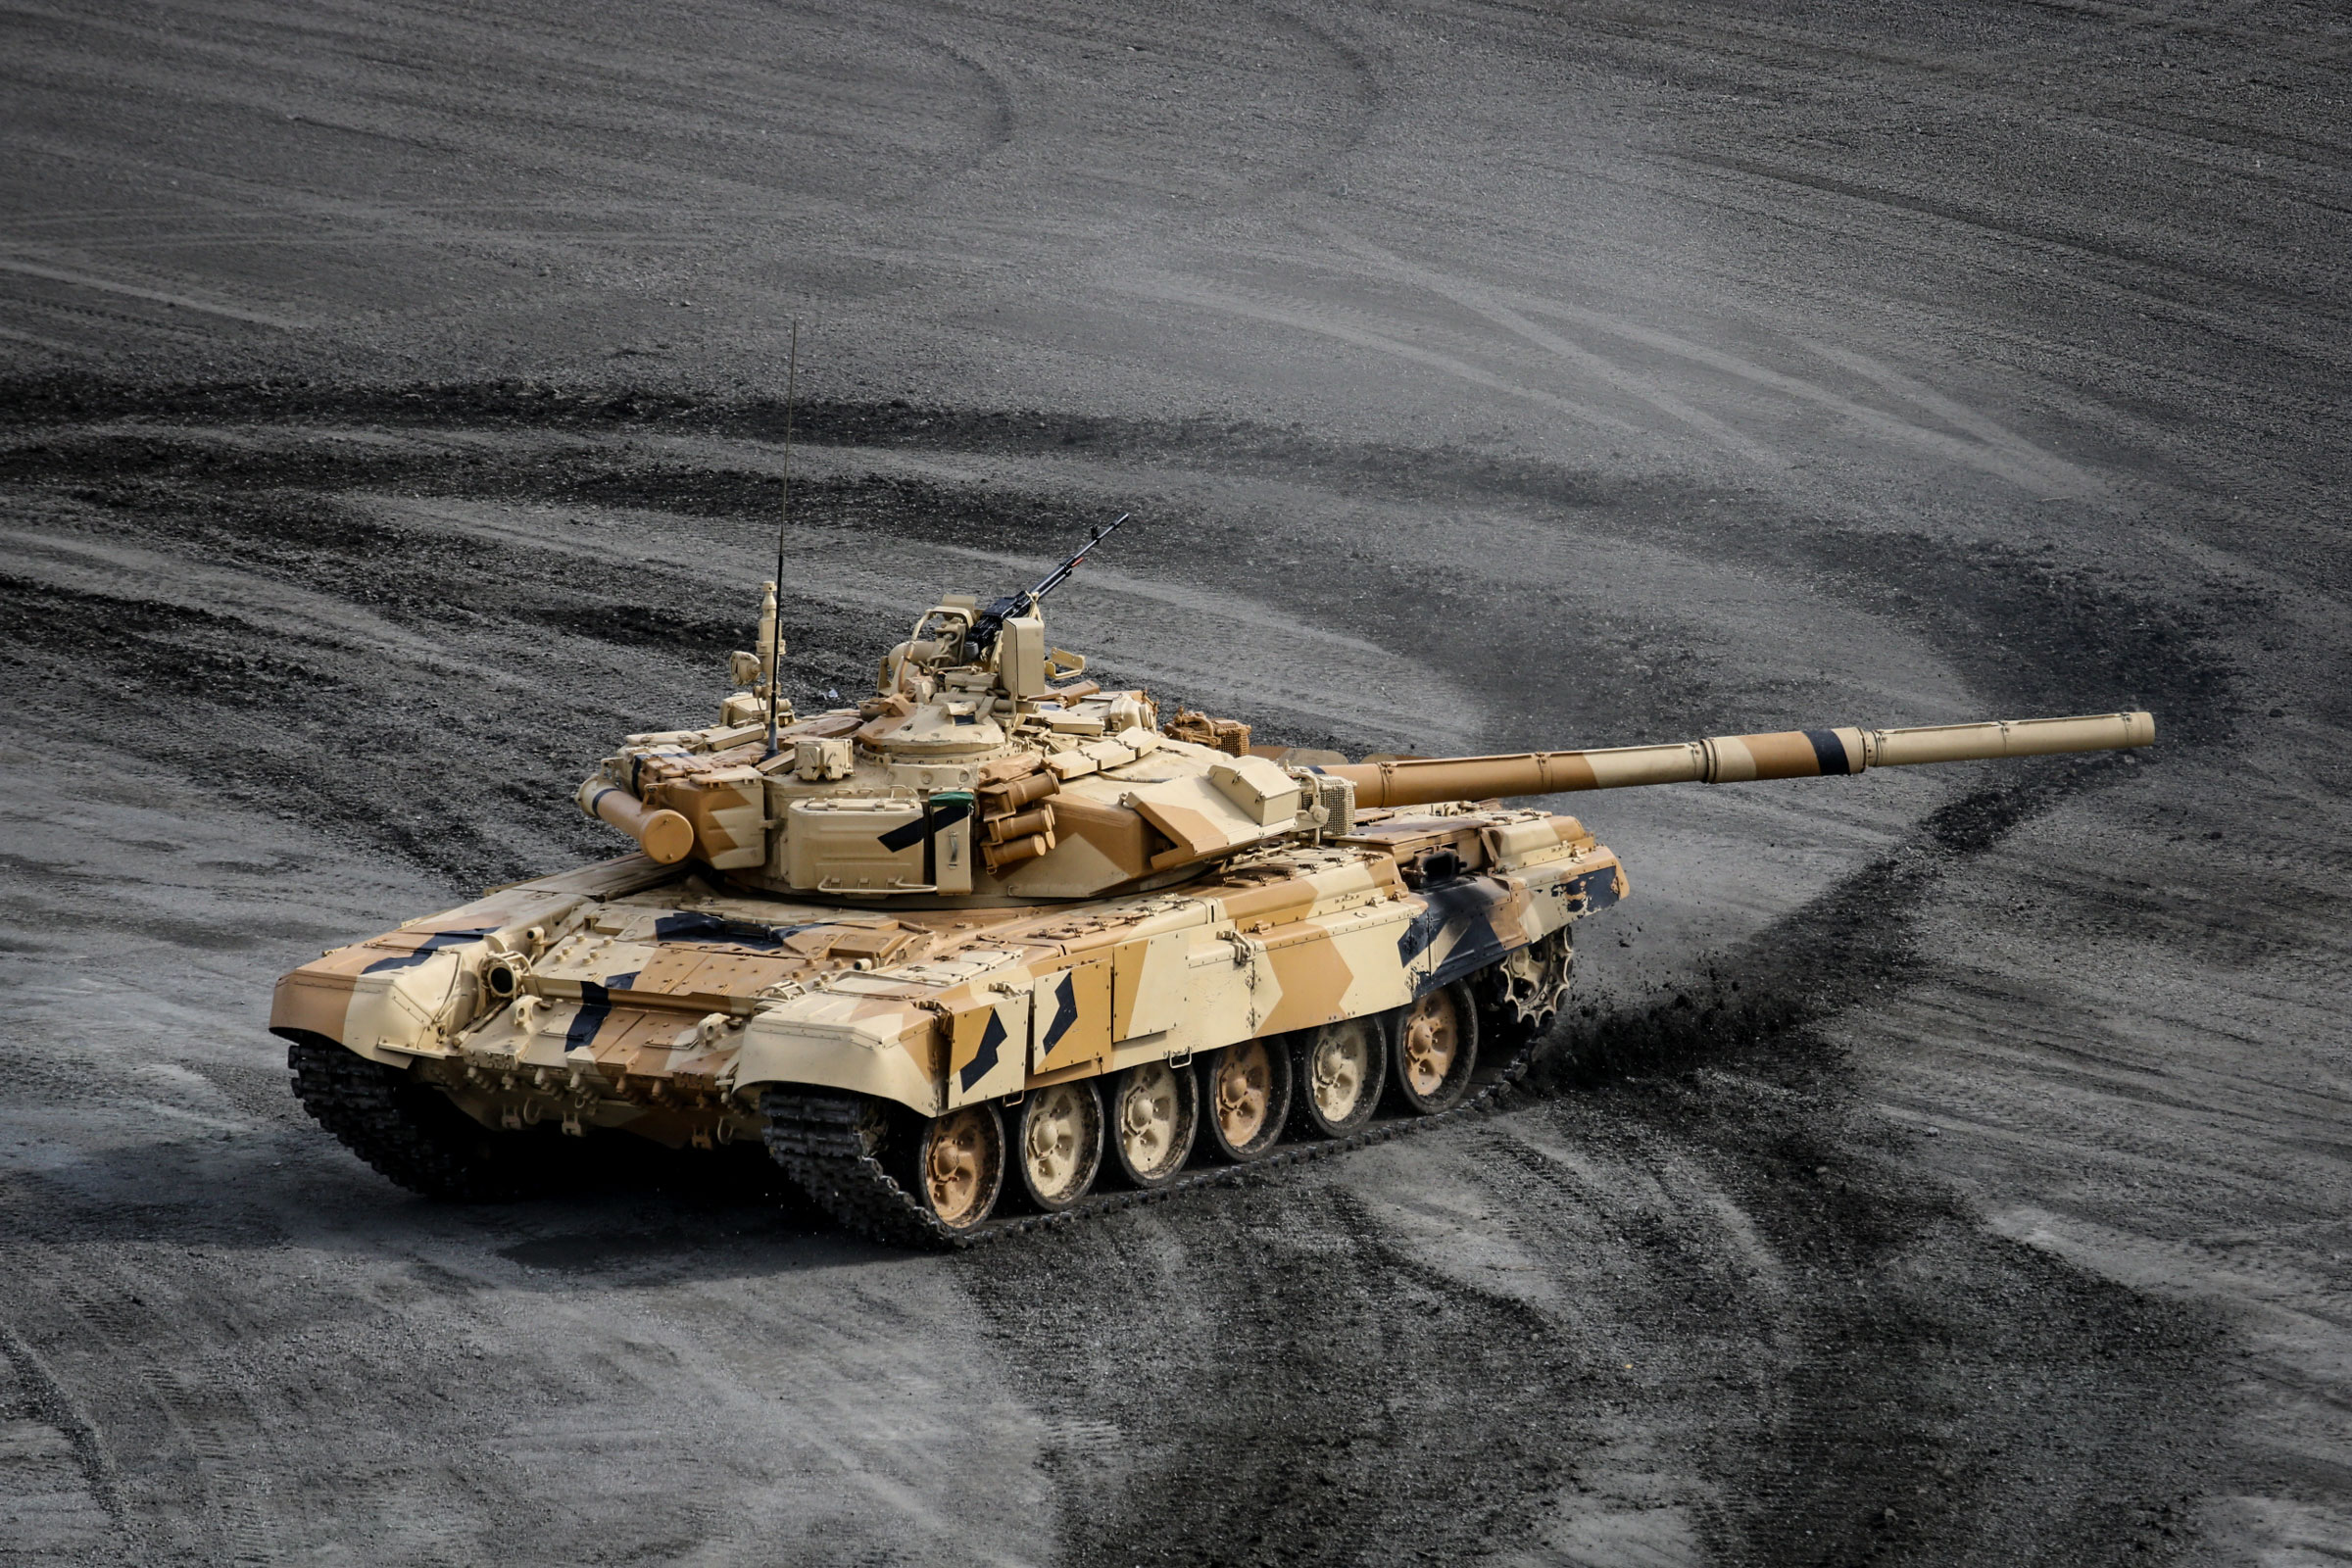 By 2020, India plans to induct more than 1,600 T-90 tanks.